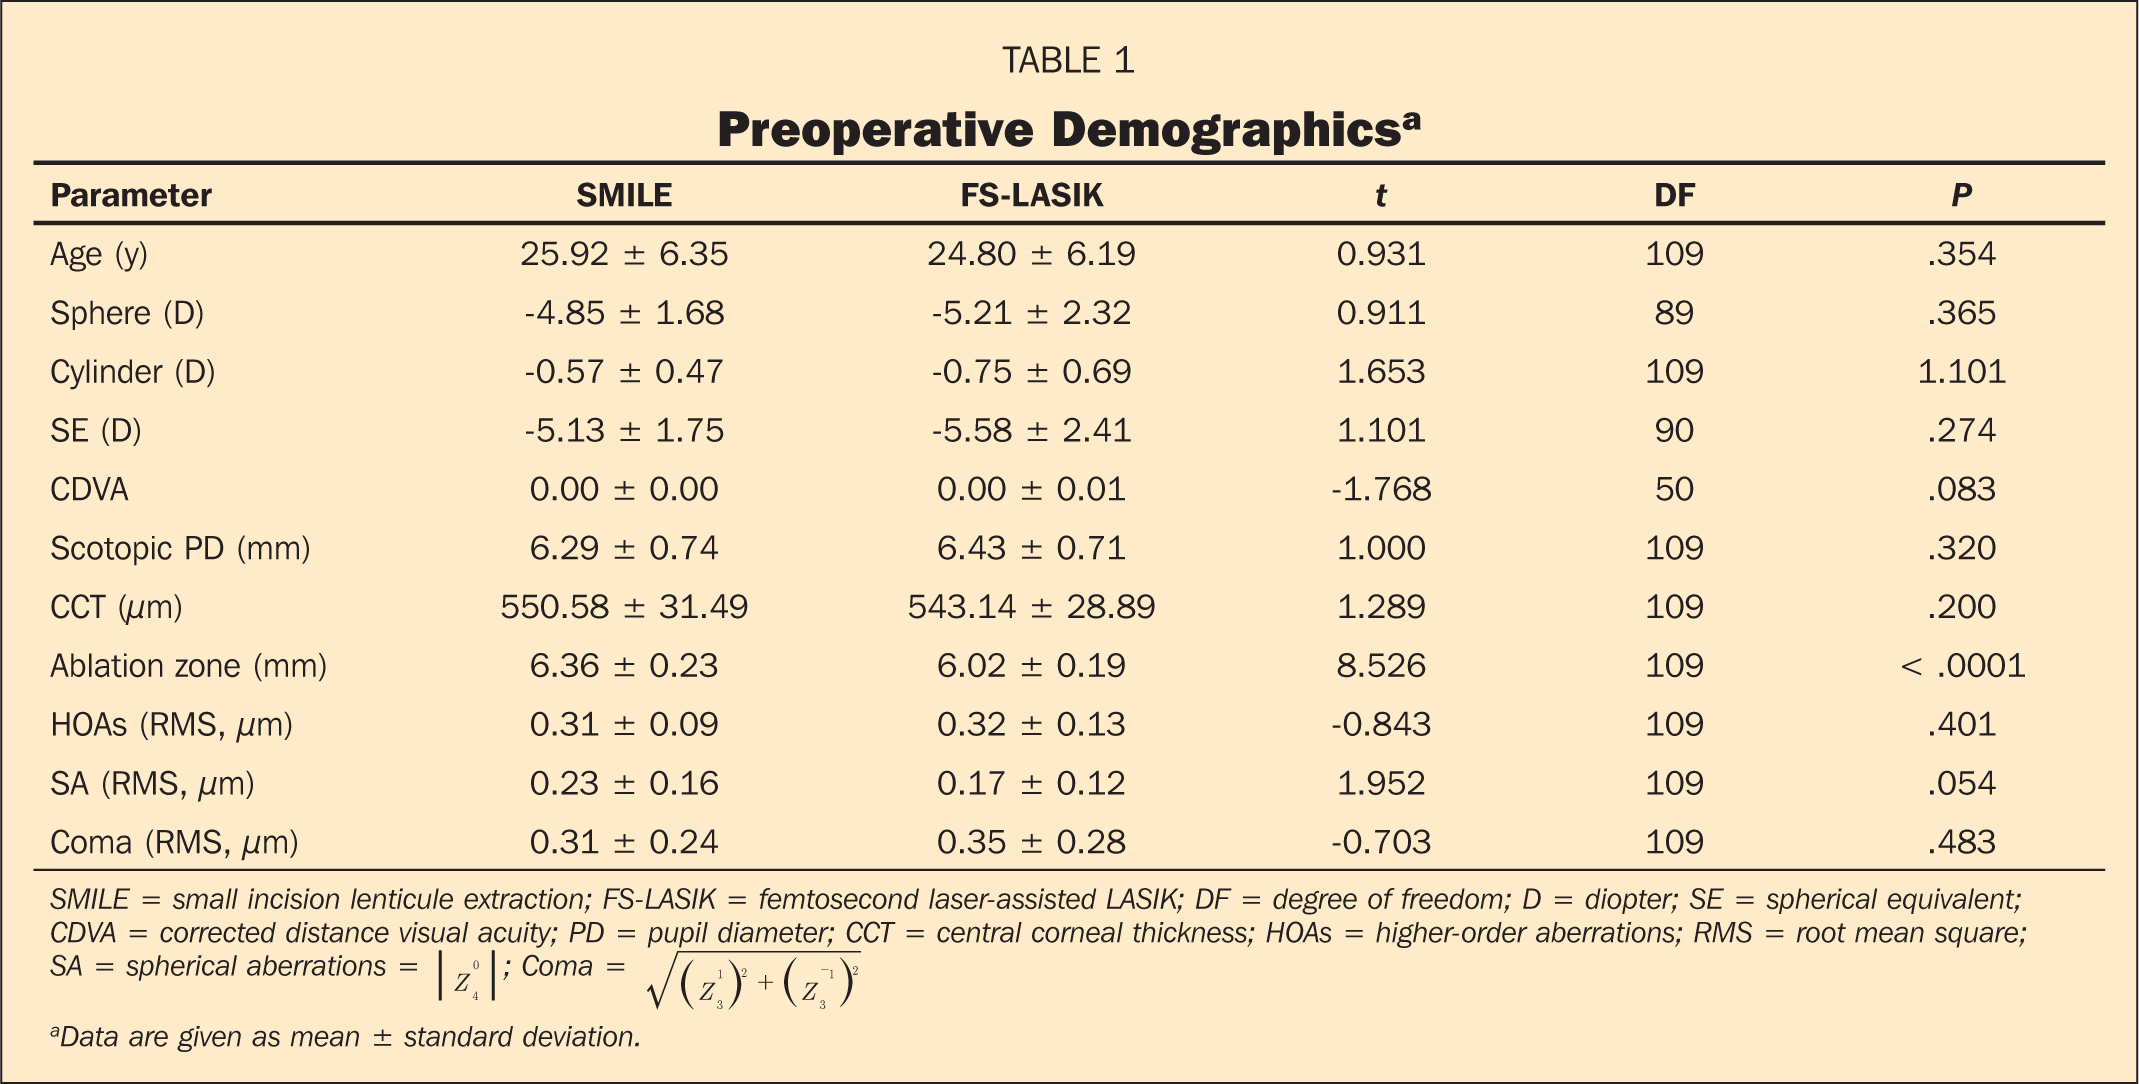 Preoperative Demographicsa